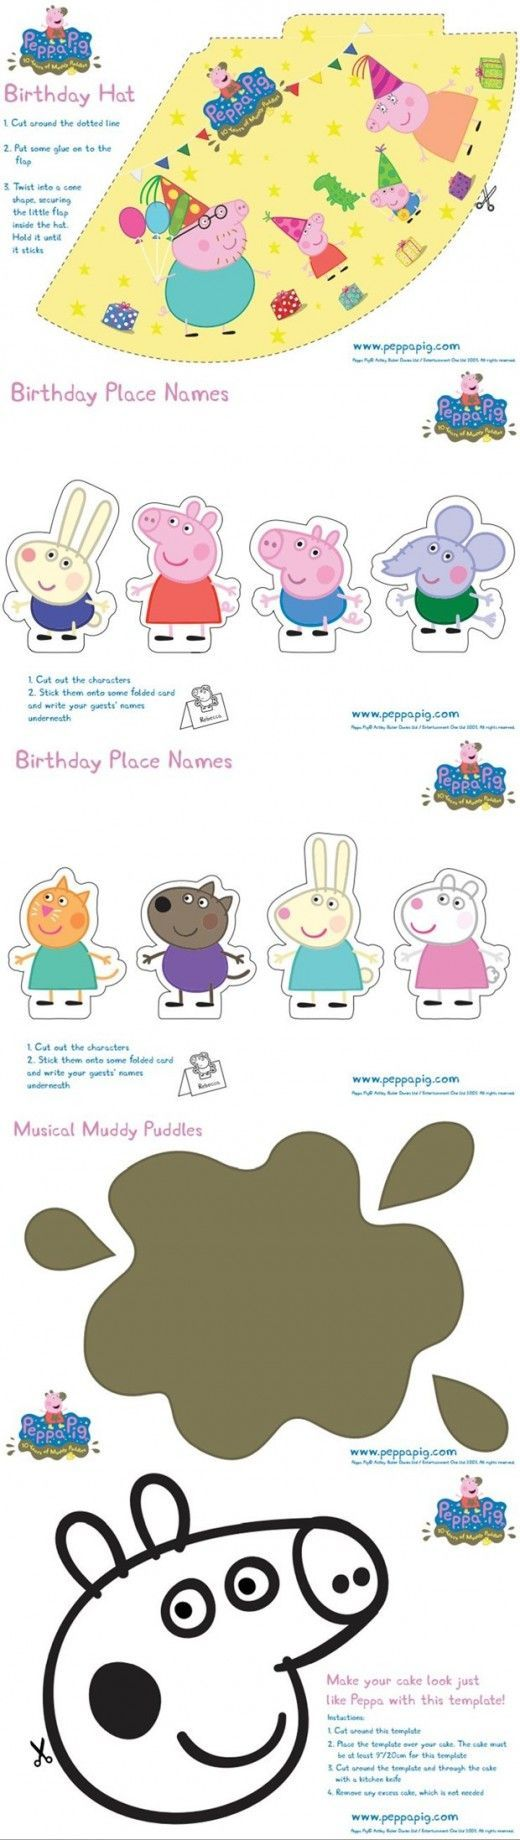 FREE Peppa Pig Party Printables (Birthday Hat, Place Names or stickers, activity sheets)